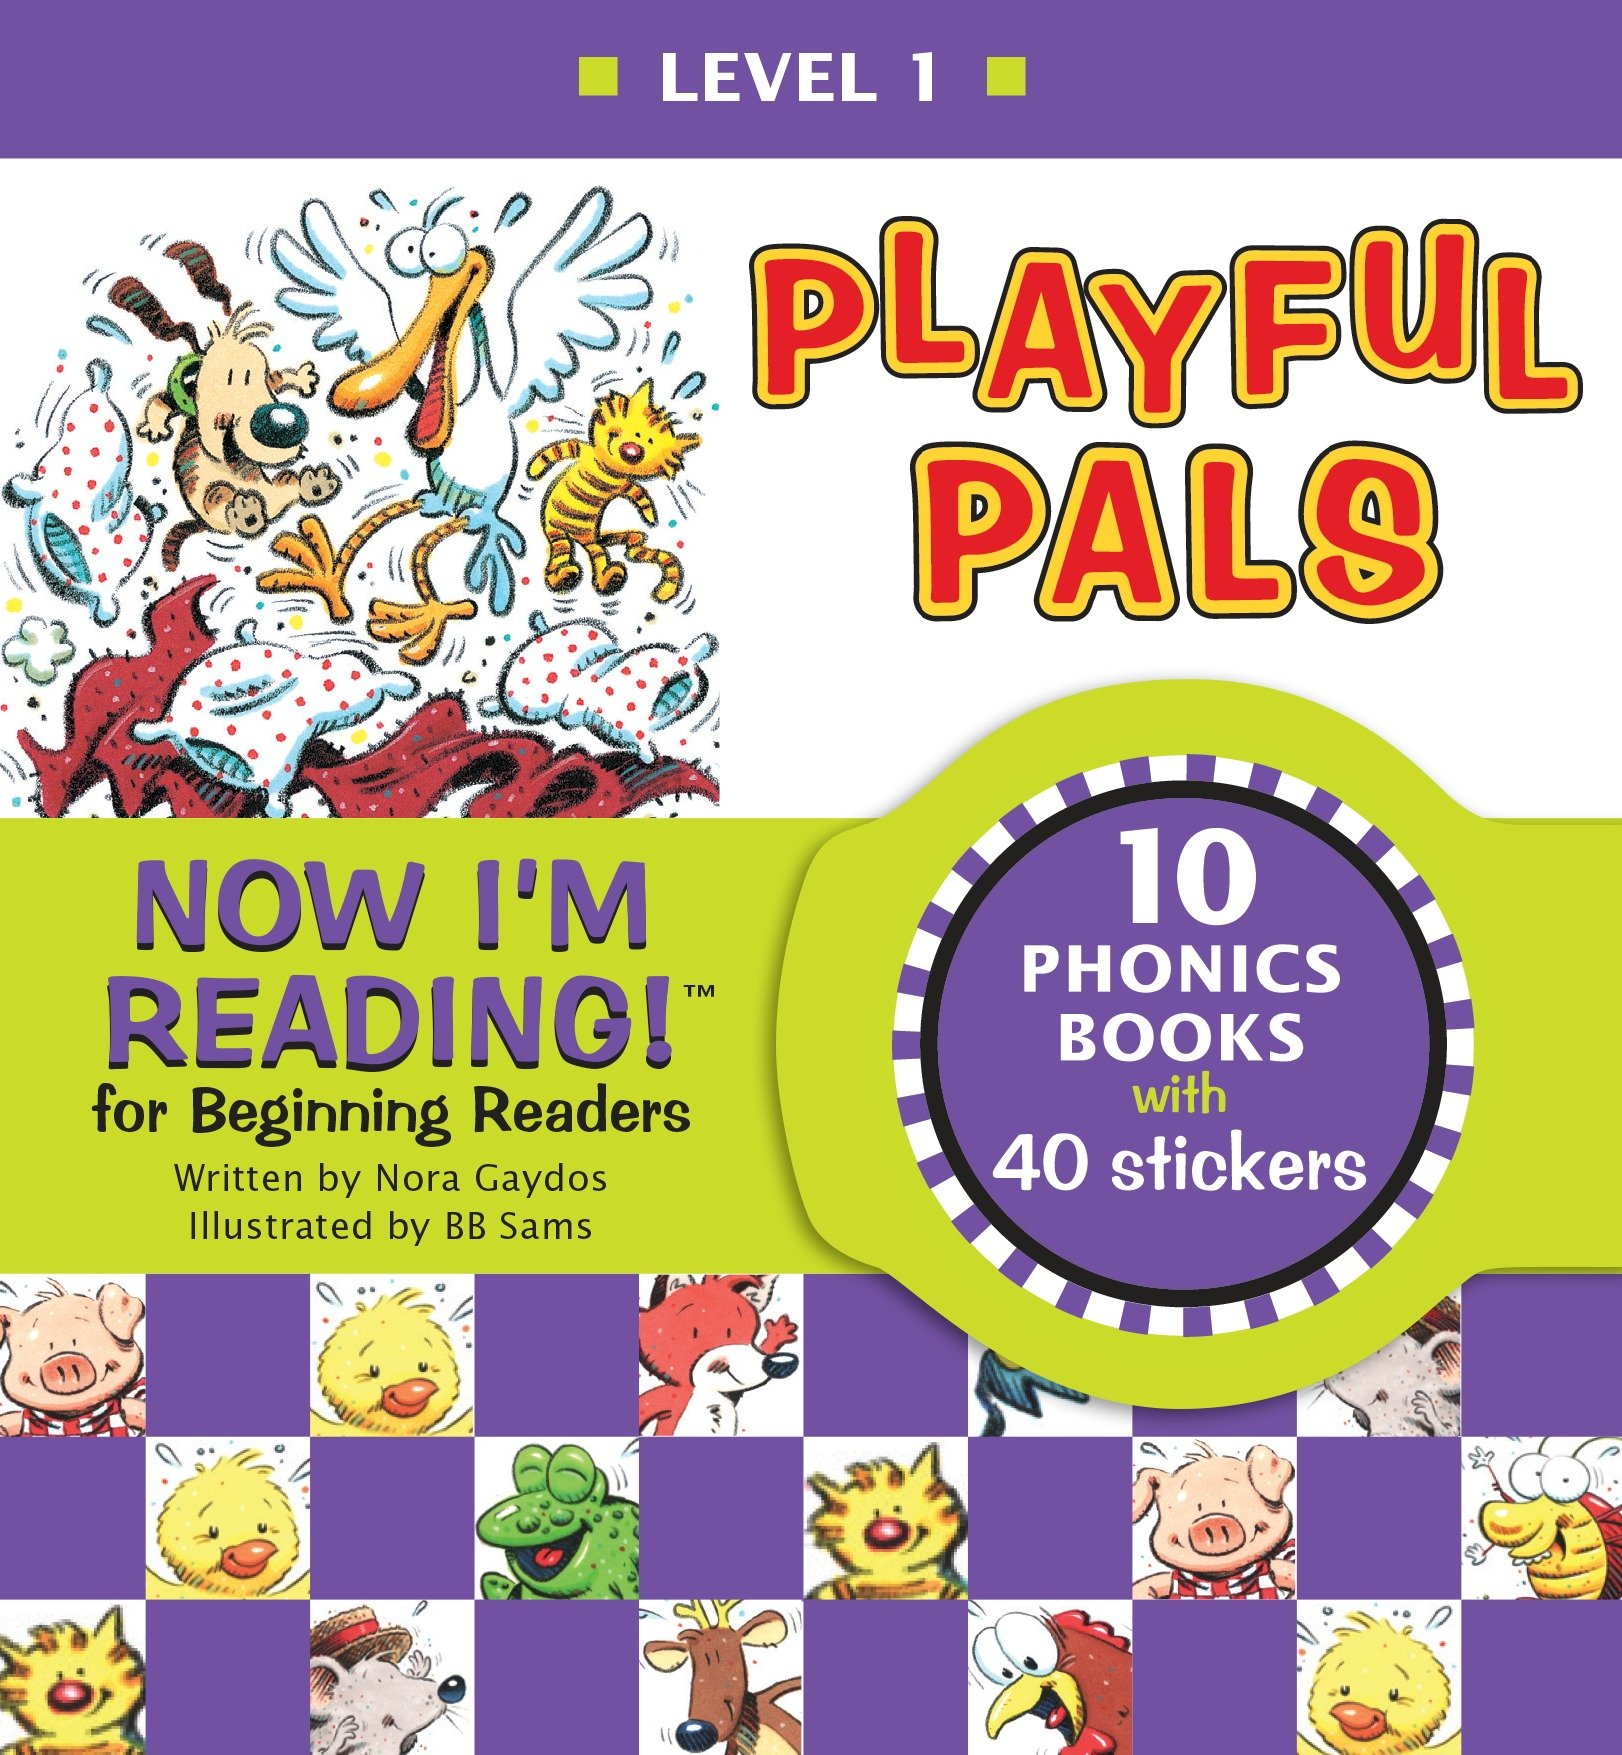 Now I'm Reading! Level 1: Playful Pals (Hardcover)